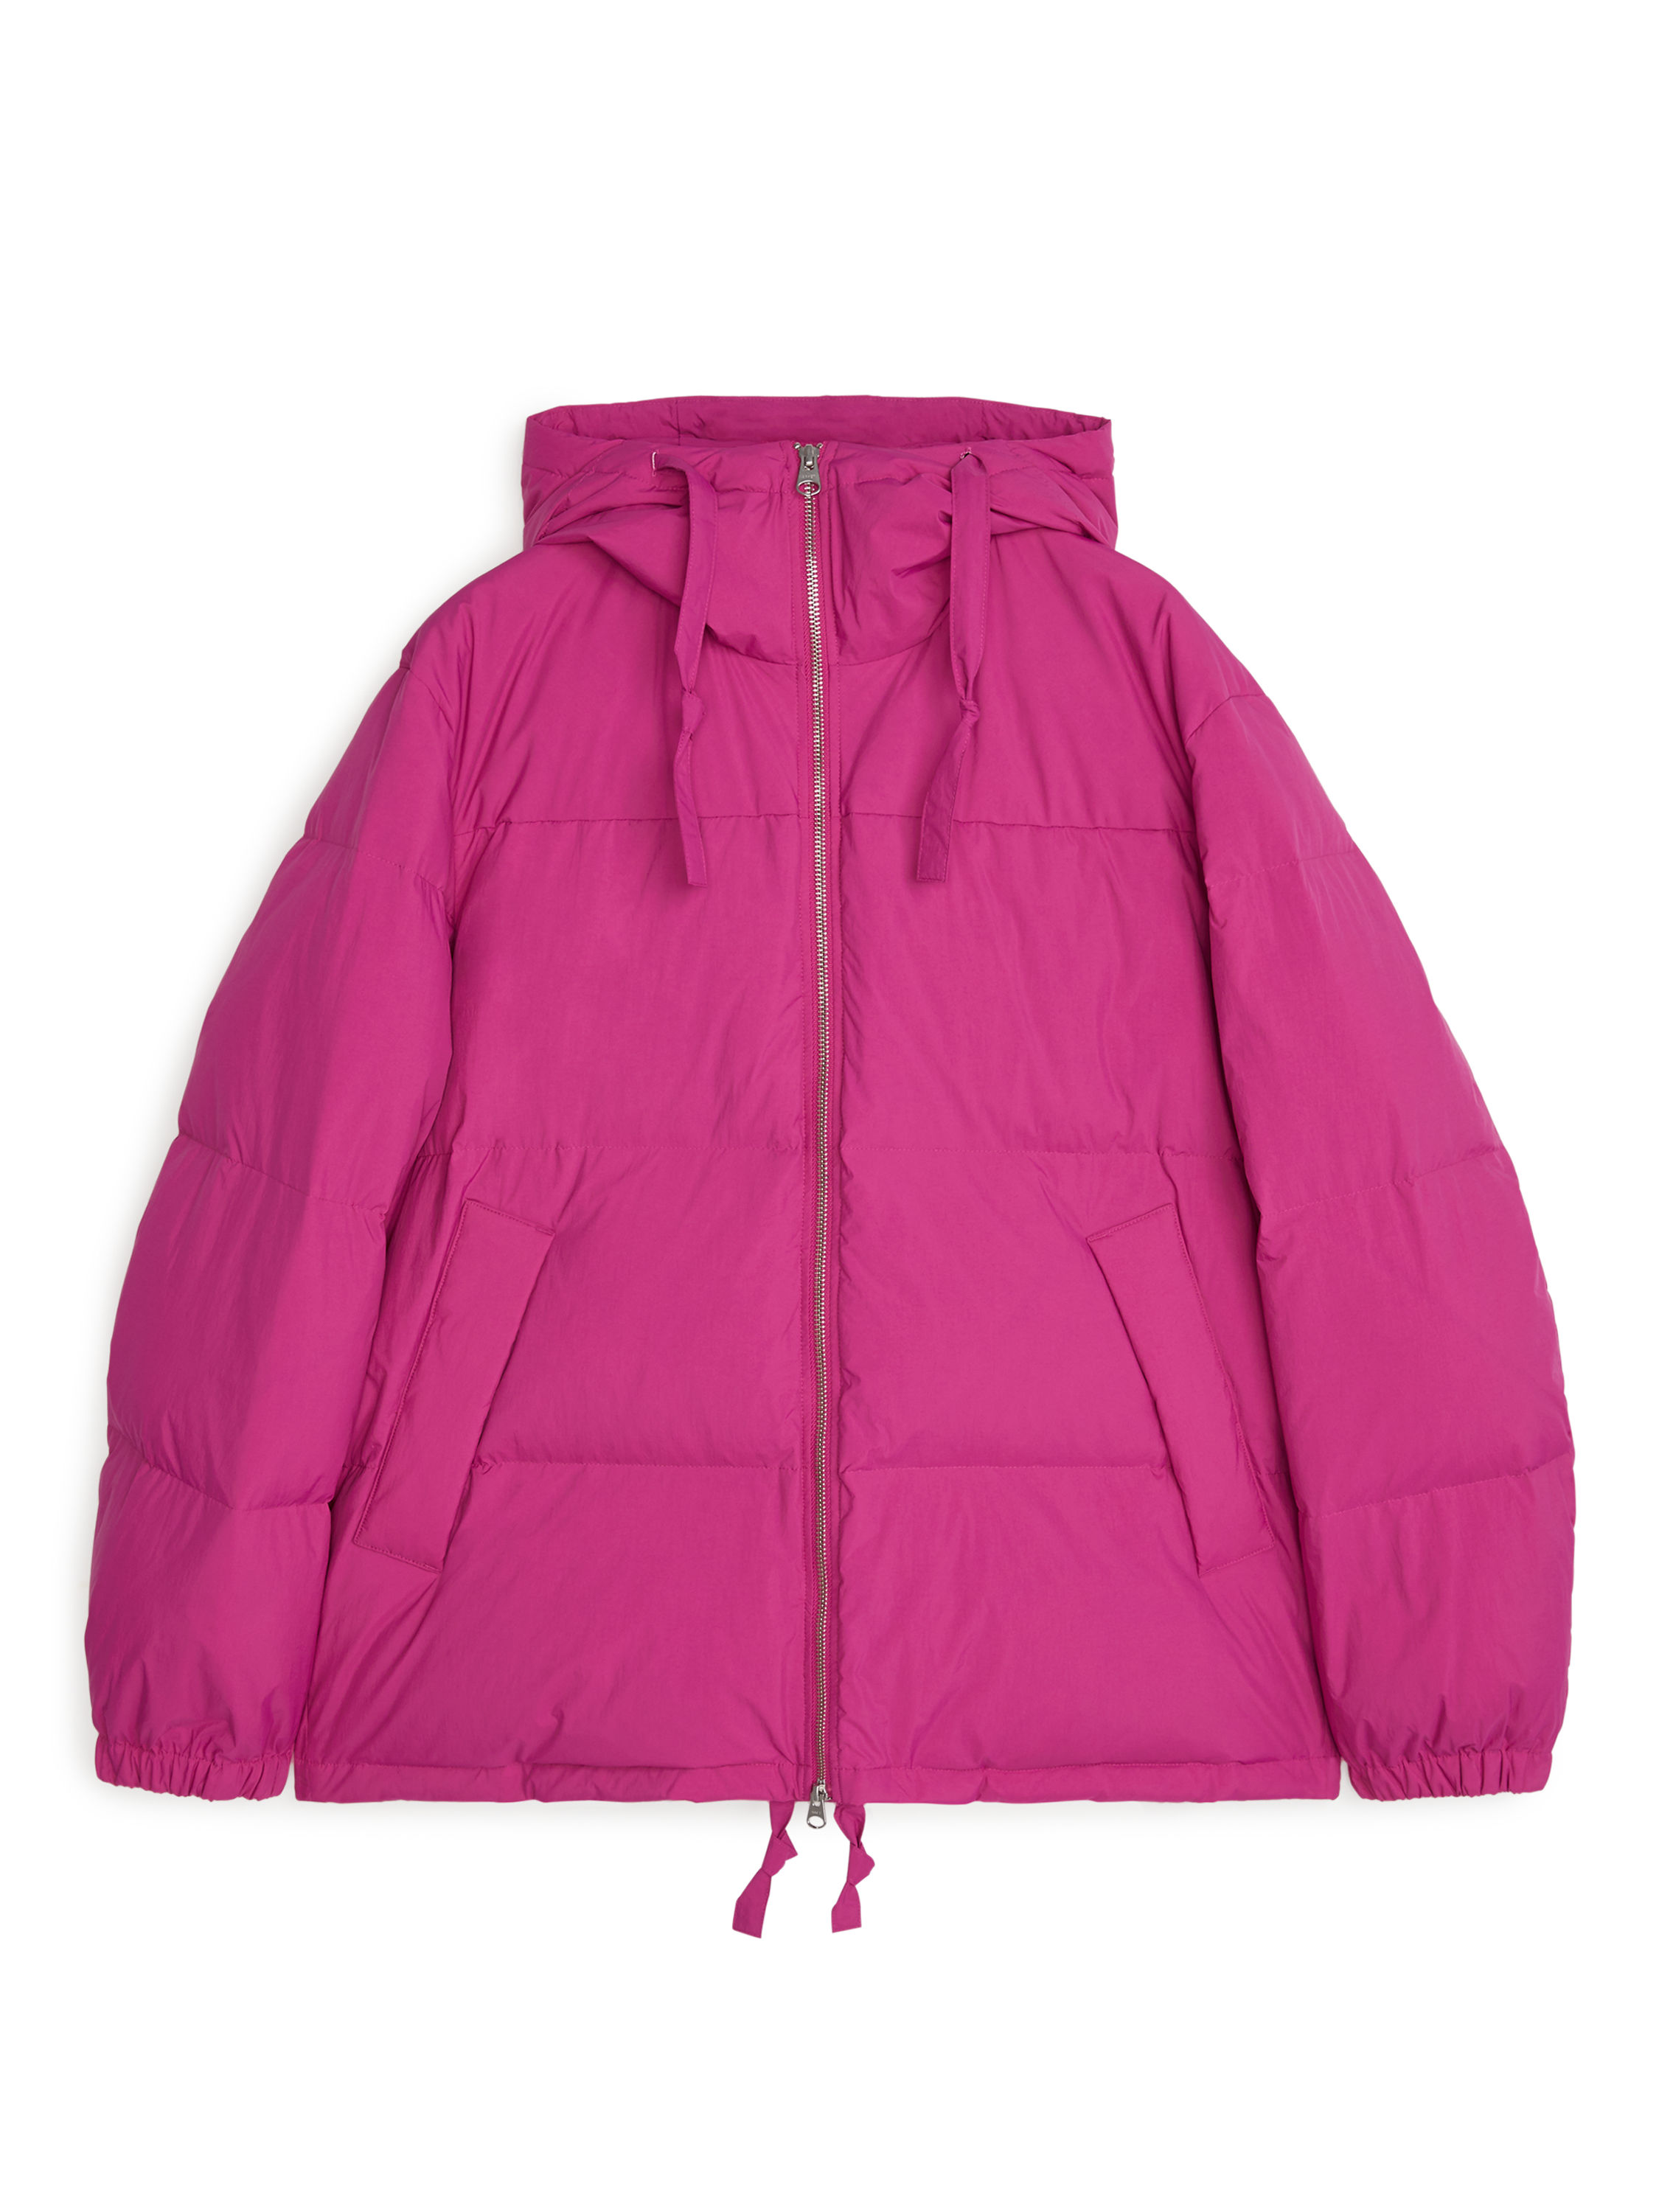 Fabric Swatch image of Arket down puffer jacket in pink